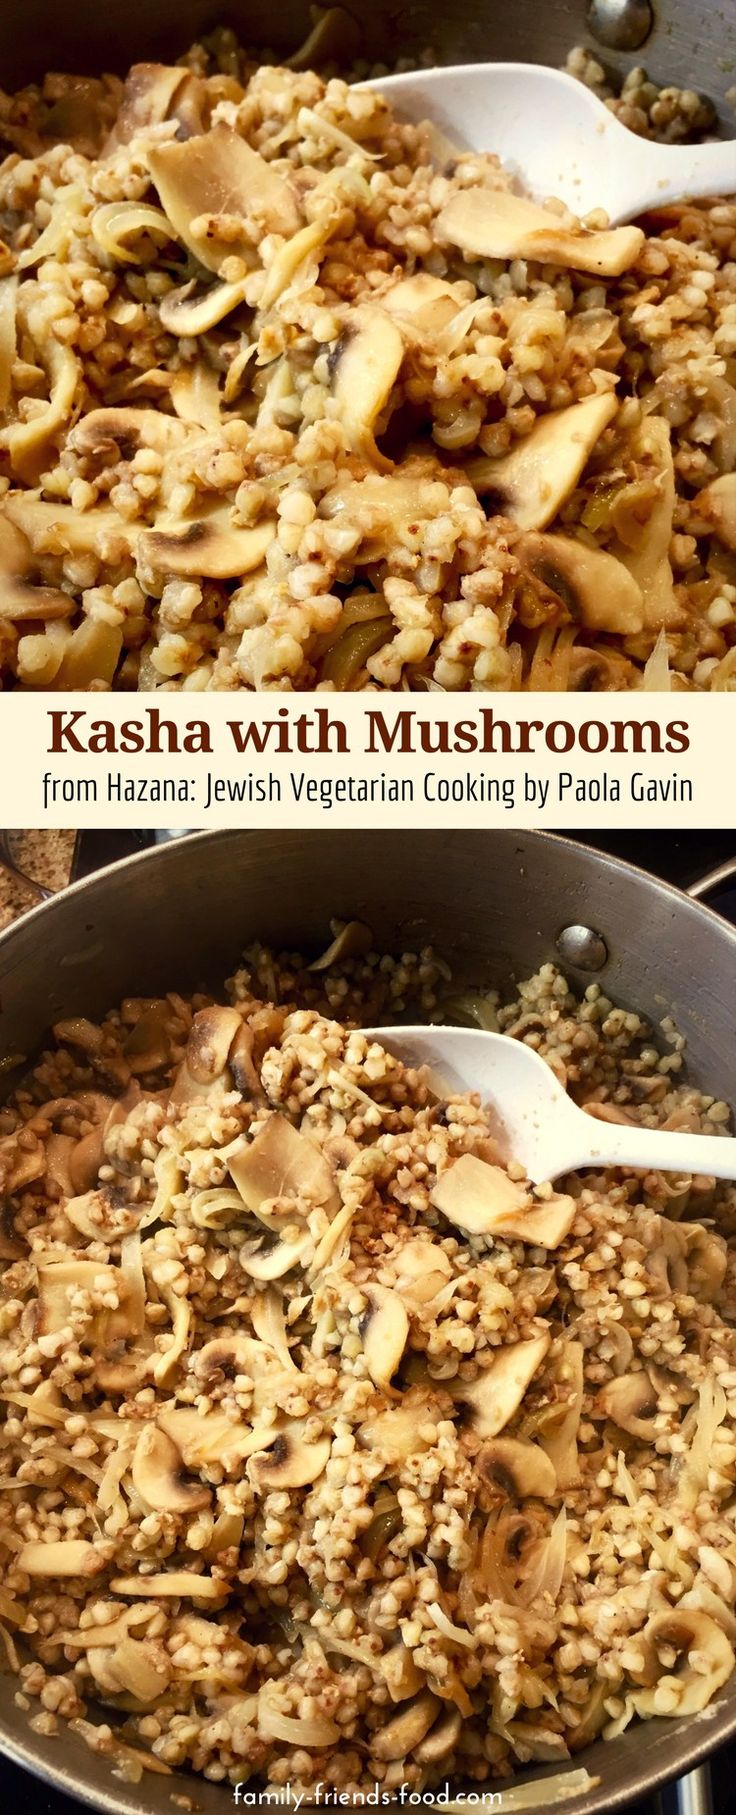 Nutty, buttery, savoury kasha with mushrooms recipe, taken from Paola Gavin's book Hazana: Jewish Vegetarian Cooking. A delicious dish plus a book review. #jewish #vegetarian #recipe